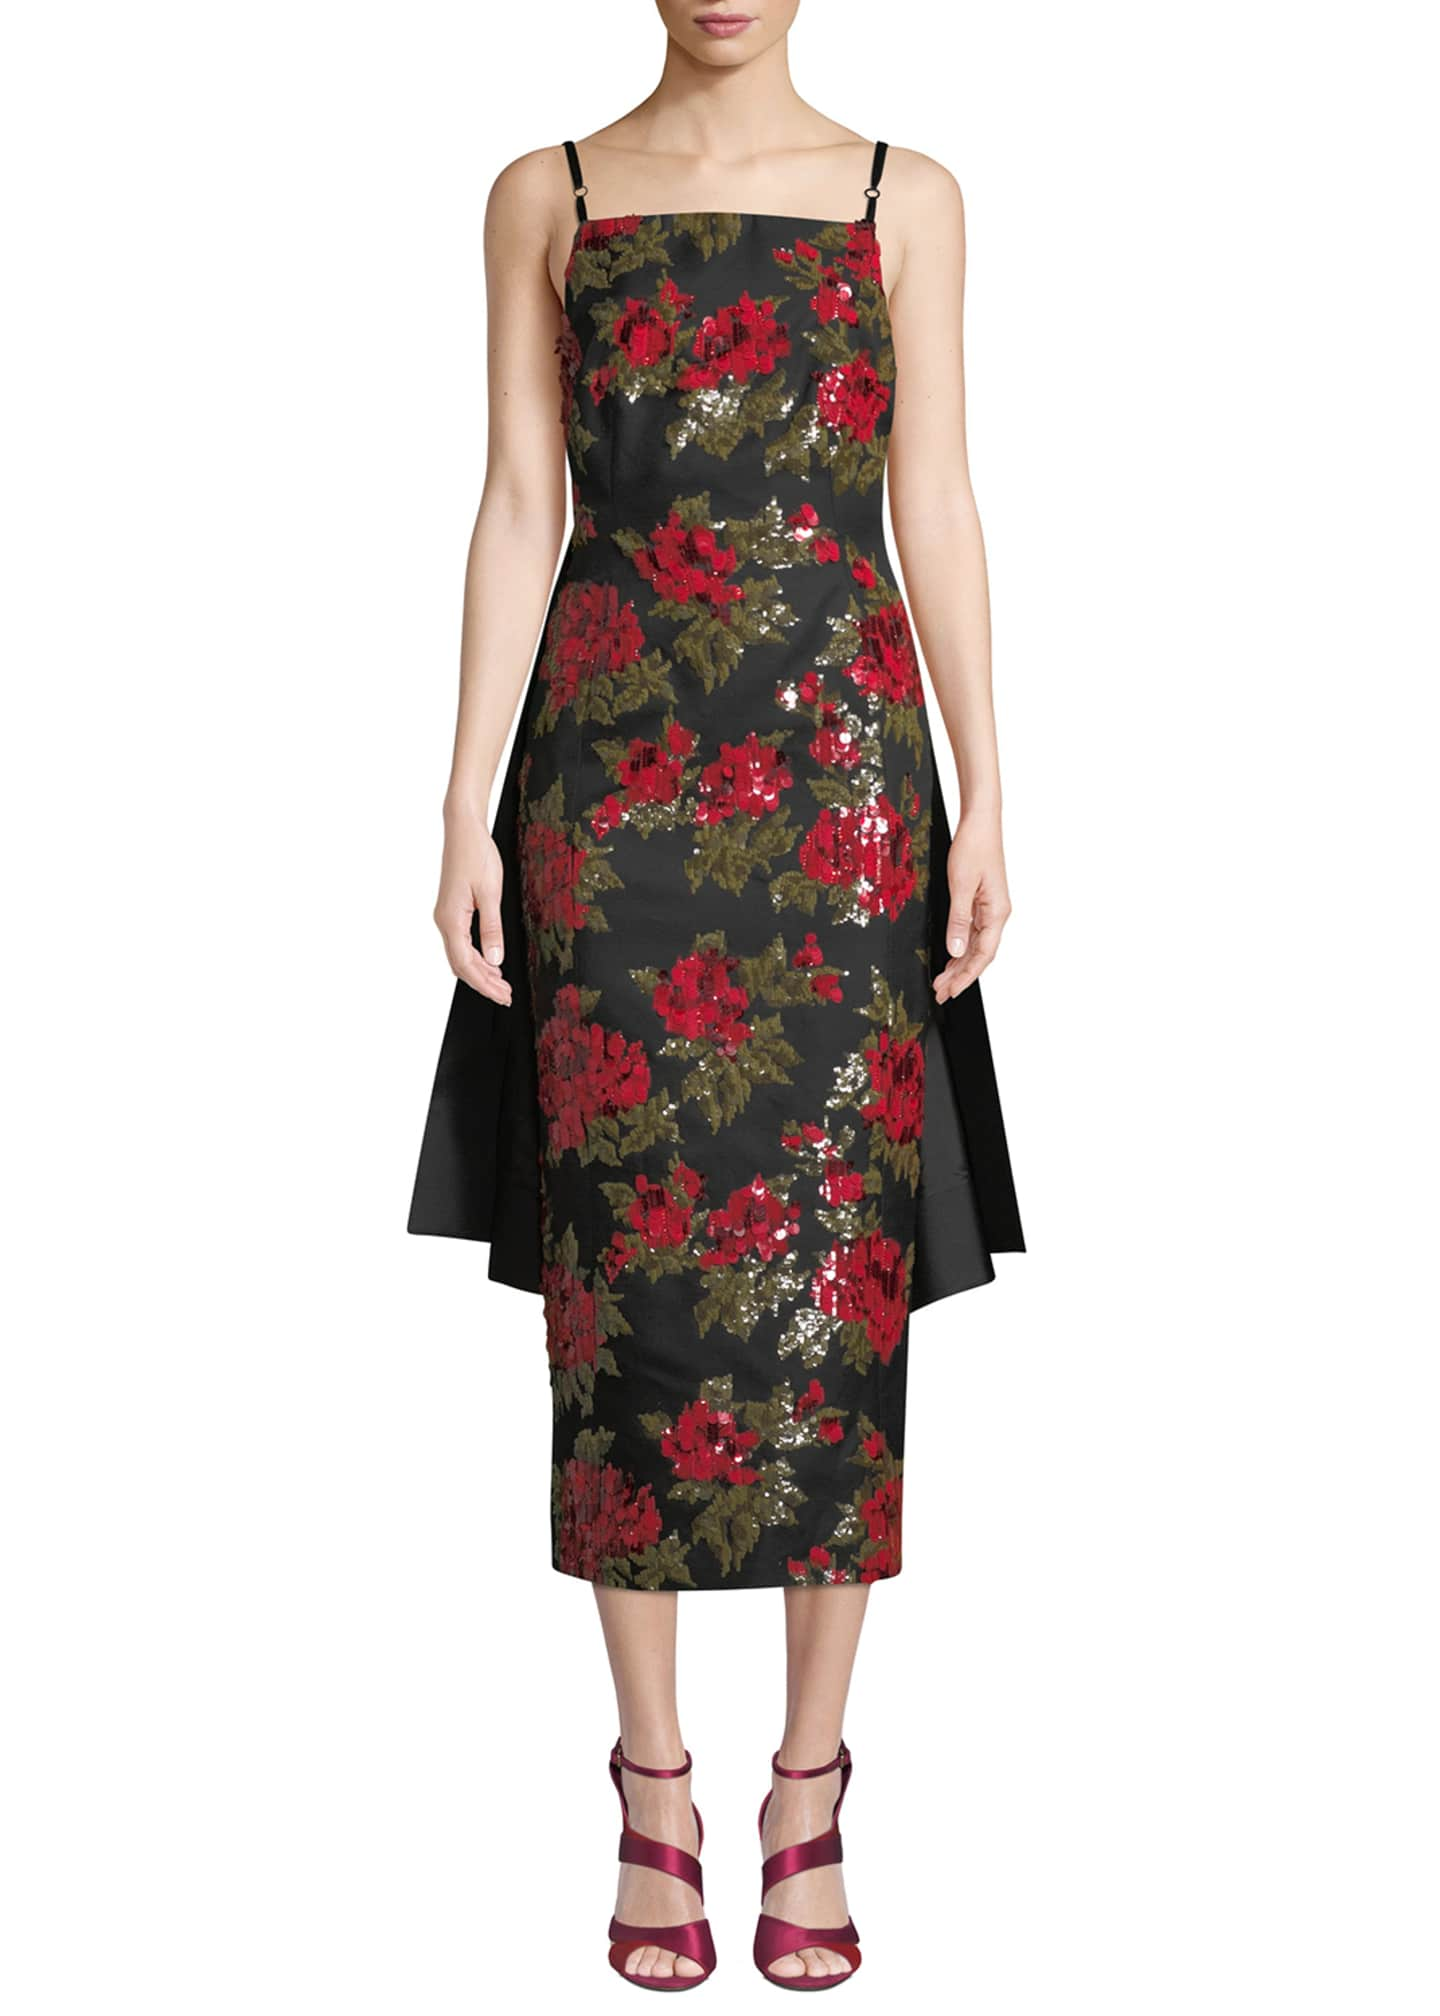 Michael Kors Collection Chine Floral-Embroidered Cocktail Dress